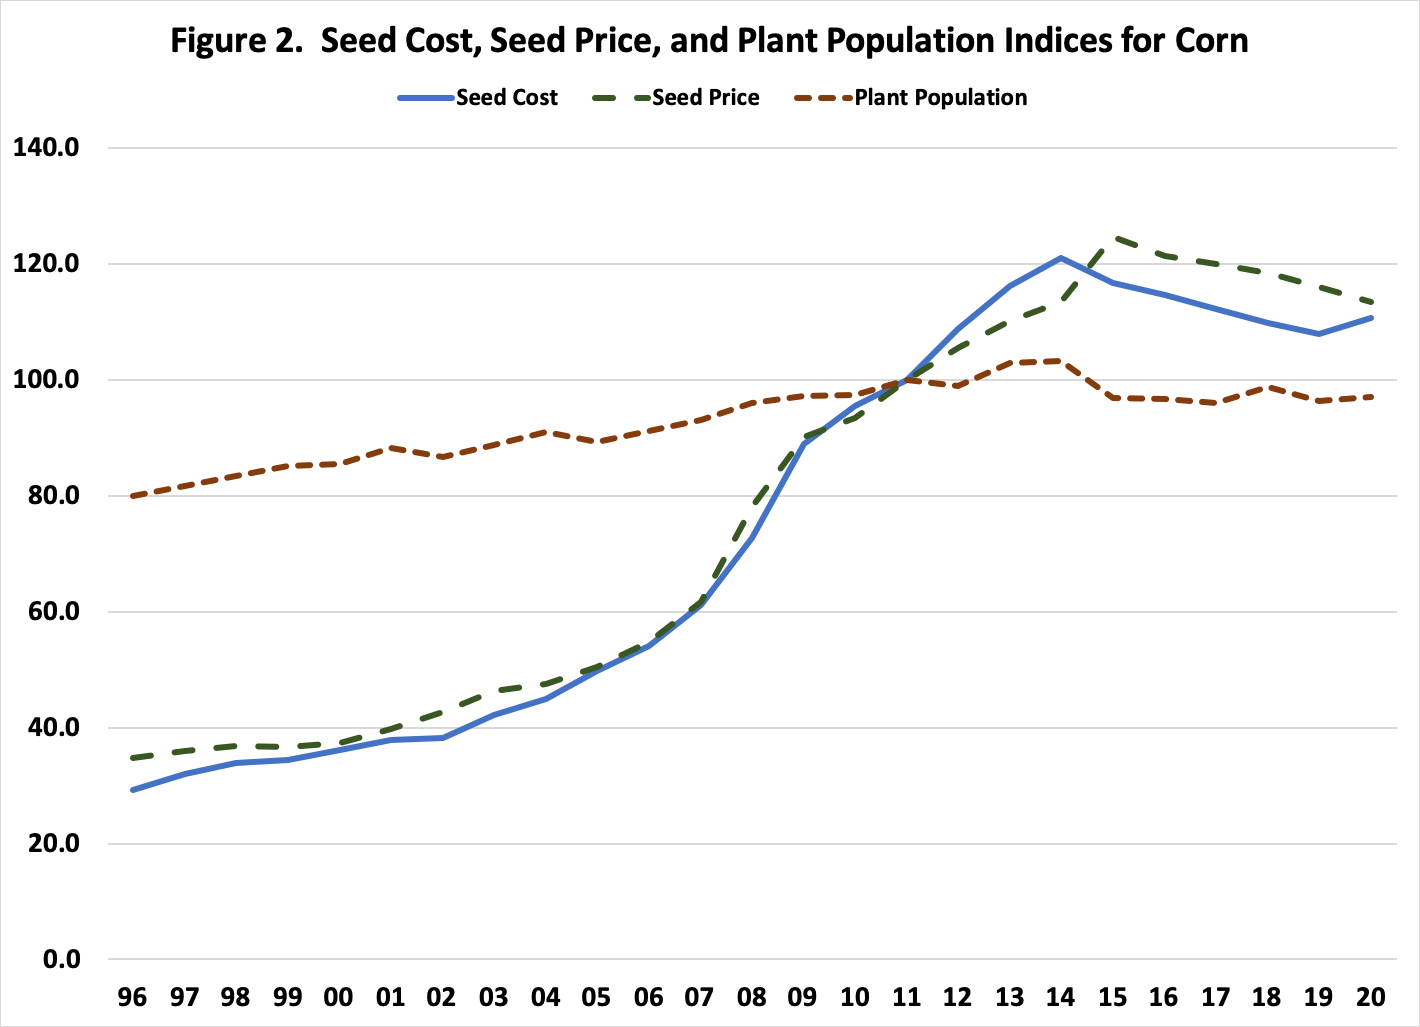 Figure 2.  Seed Cost, Seed Price, and Plant Population Indices for Corn